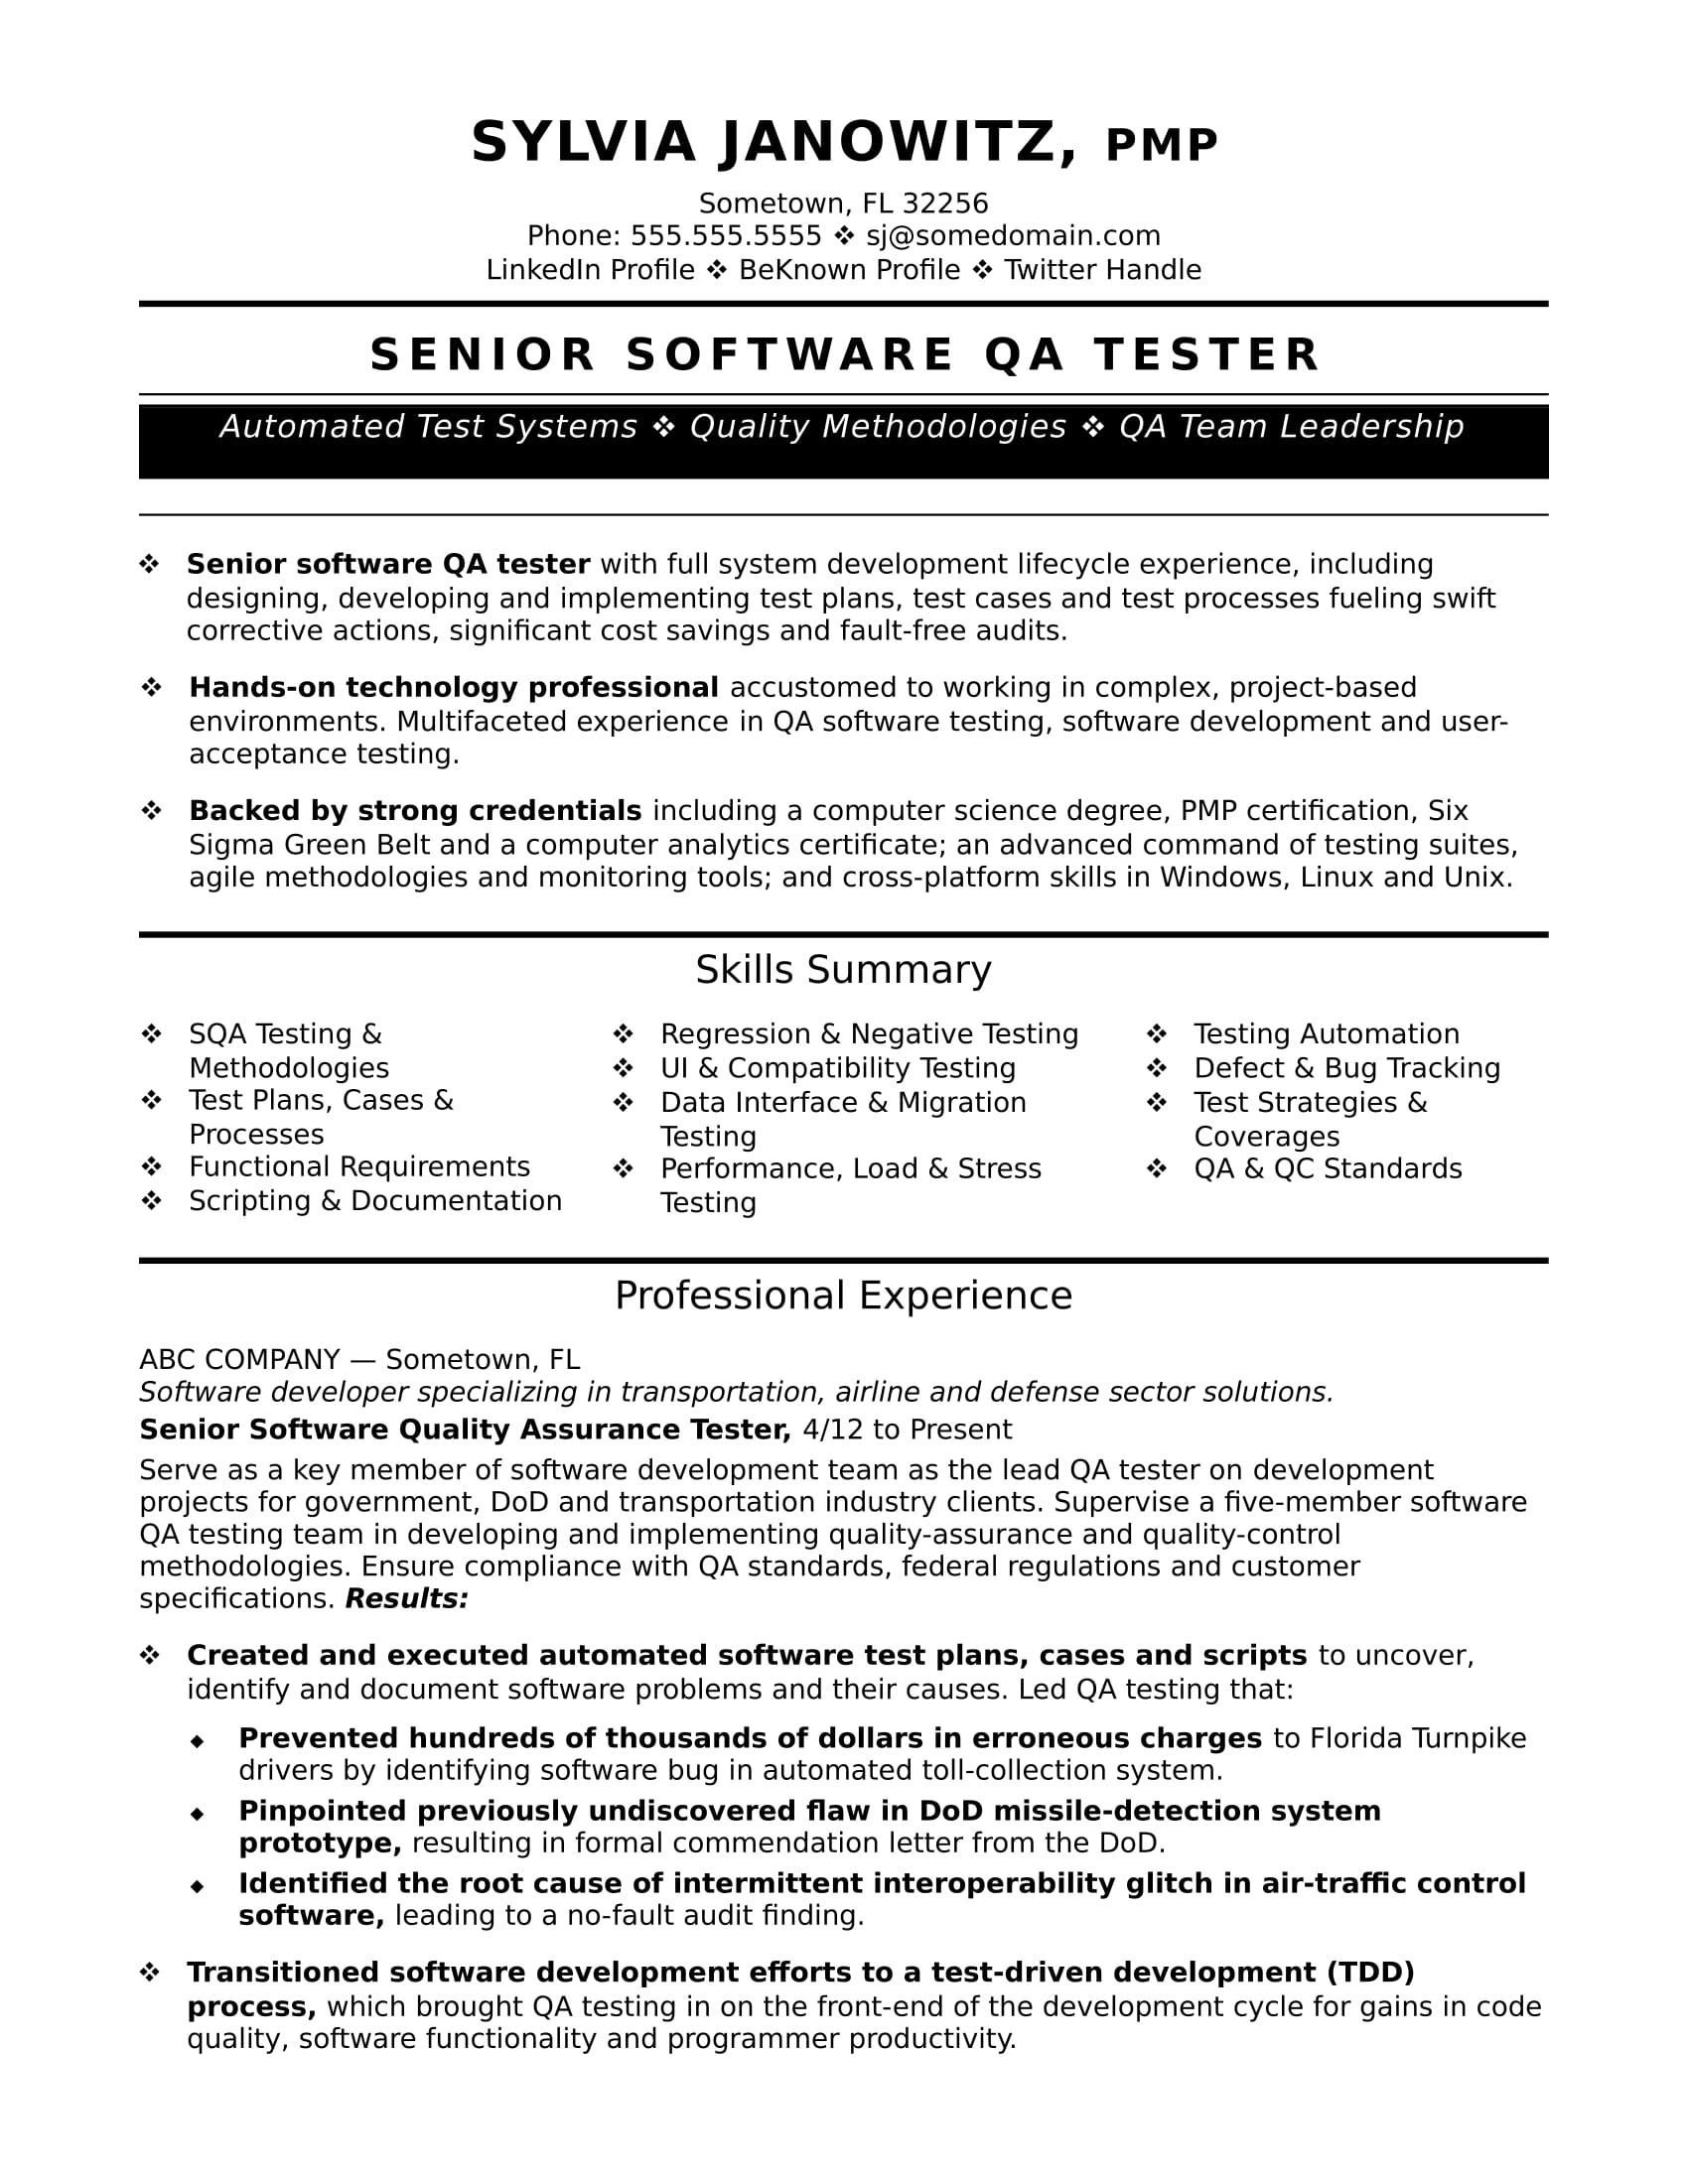 Software Qa Resume Stunning Experienced Qa Software Tester Resume Sample  Resume Templates .